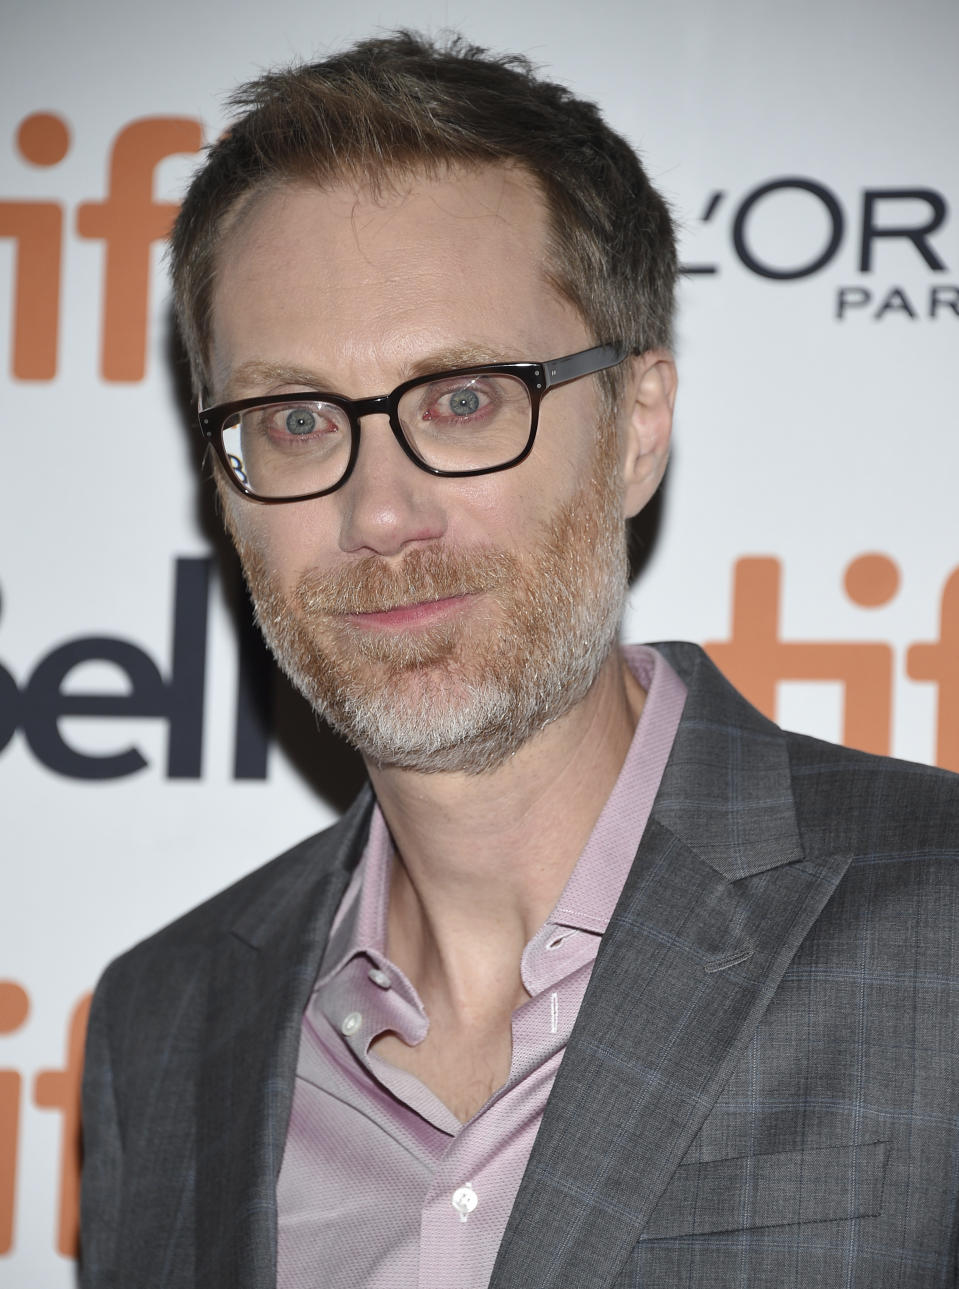 """Actor Stephen Merchant attends the premiere for """"Jojo Rabbit"""" on day four of the Toronto International Film Festival at Roy Thomson Hall on Sunday, Sept. 8, 2019, in Toronto. (Photo by Evan Agostini/Invision/AP)"""